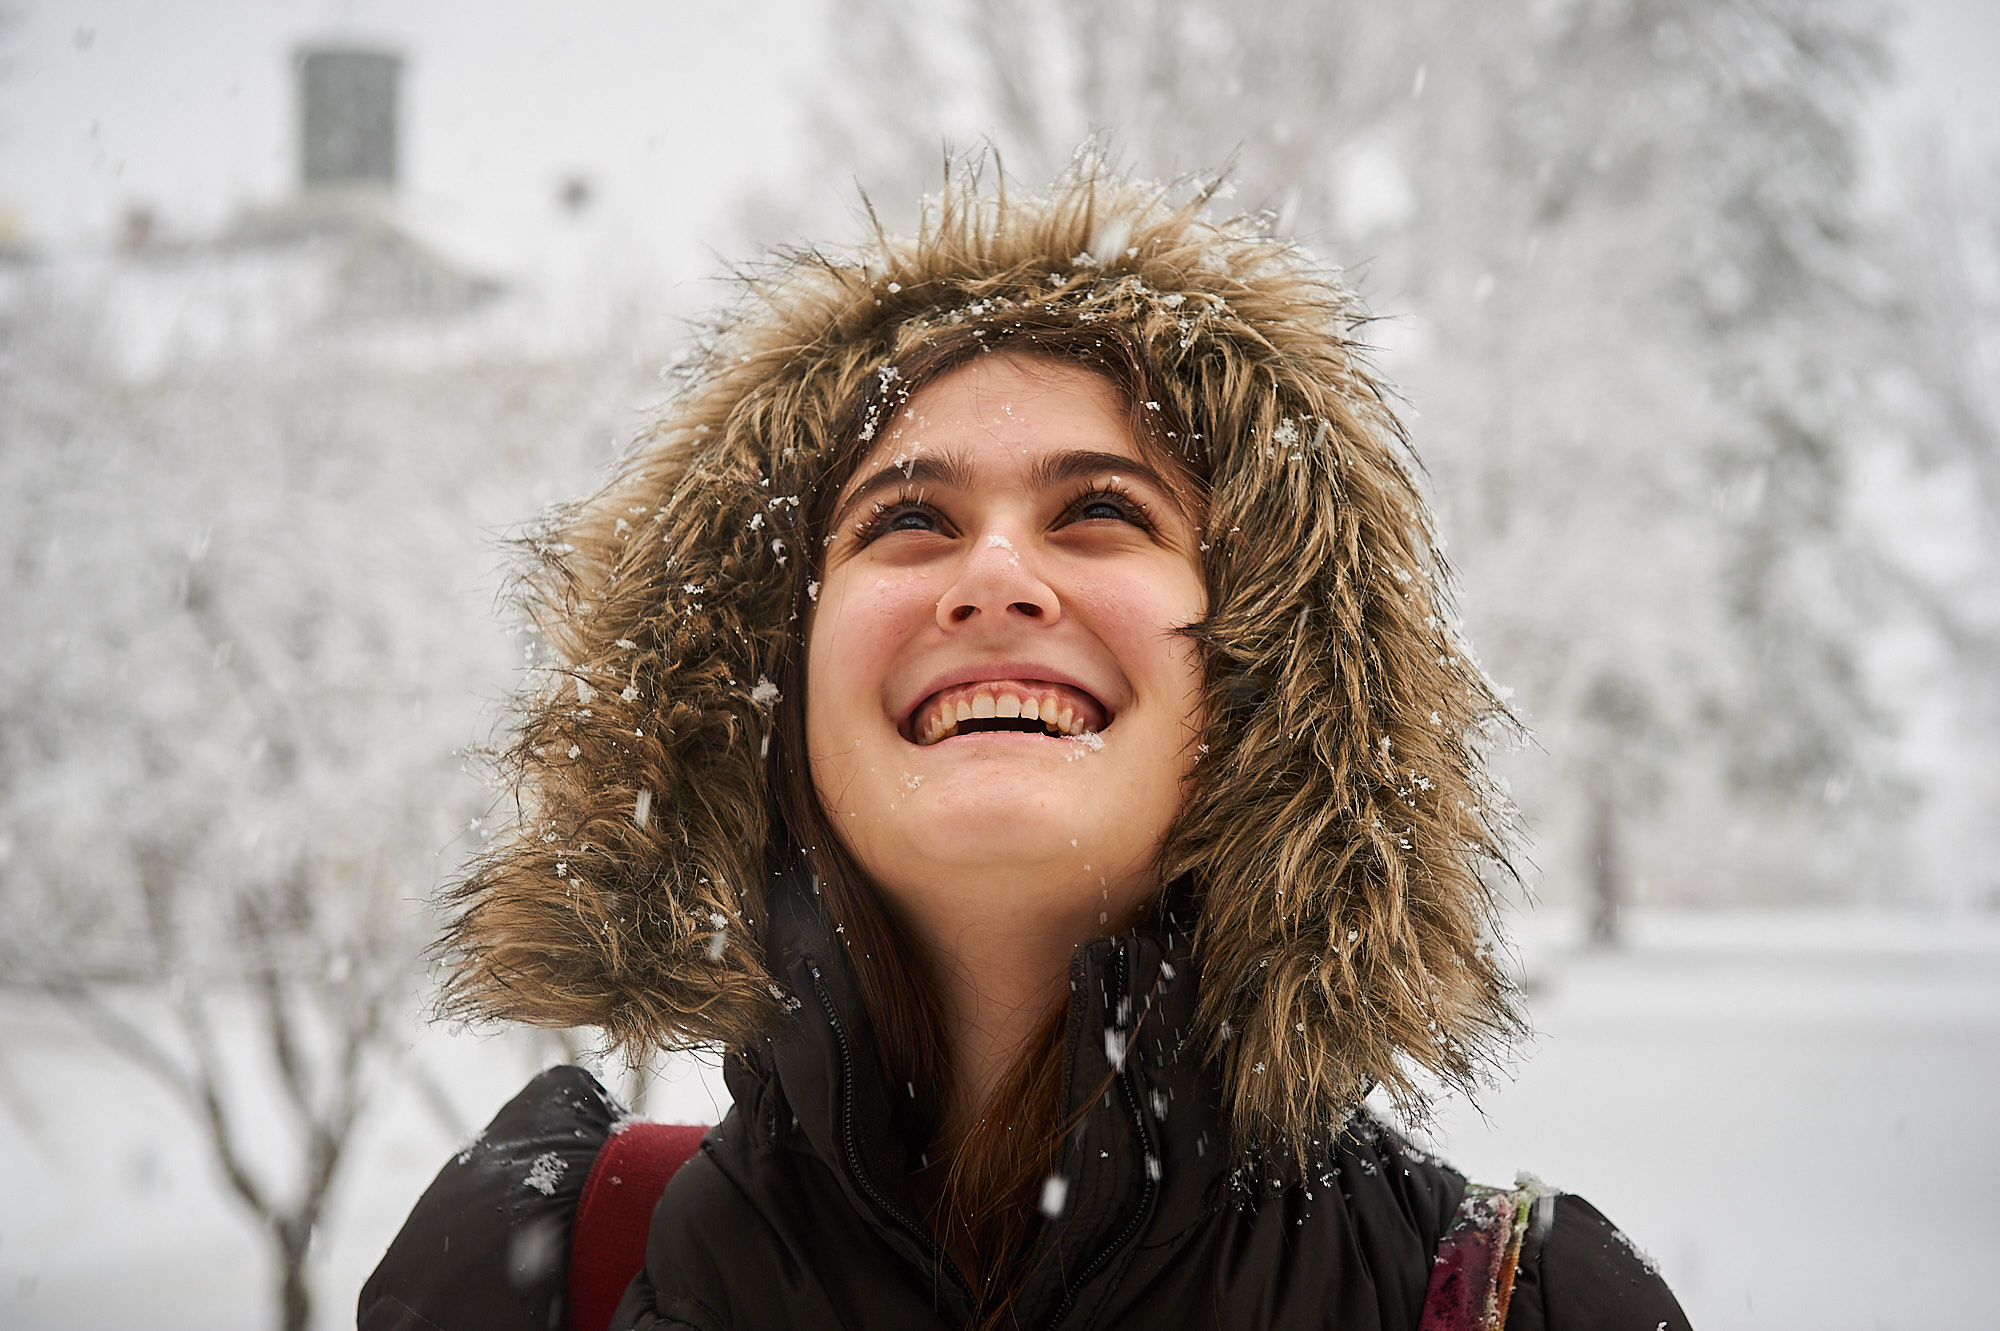 Michelle Cullen, Colgate University Class of 2015, from Atlanta, Georgia experiences her first snow storm on the Colgate University Campus